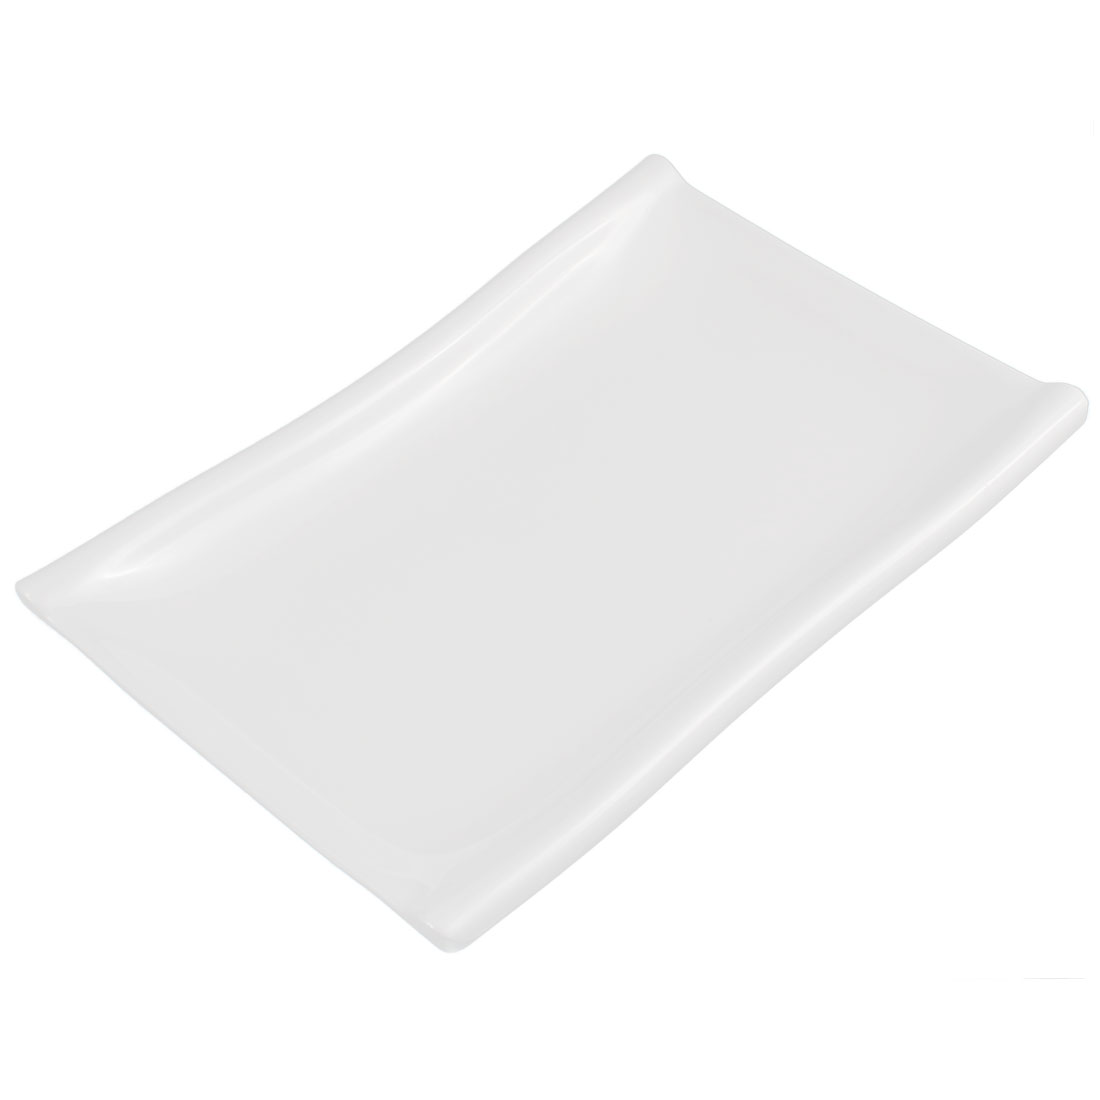 Restaurant Rectangle Shaped Dessert Food Appetizer Serving Plate Dish White